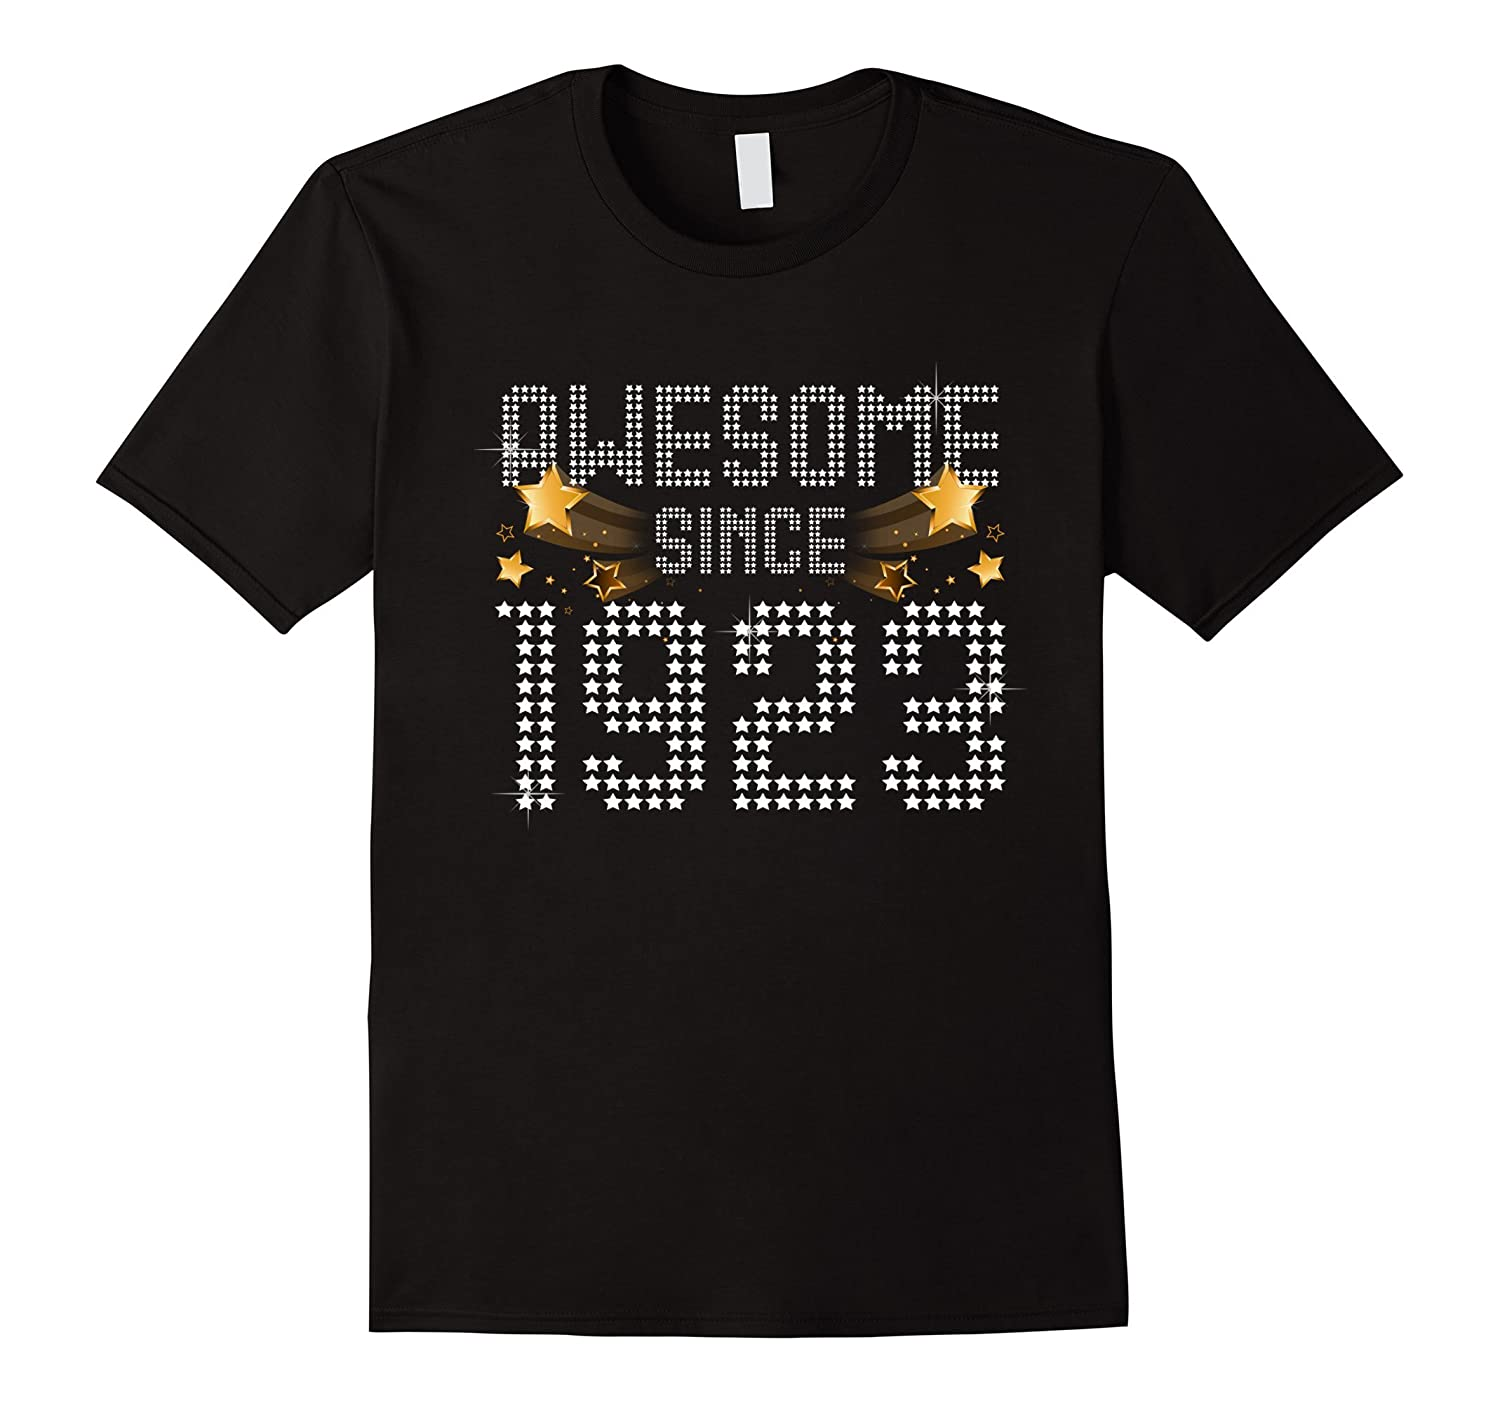 Awesome Since 1923 94 Years Old Funny 94th Birthday Gift Tee-TH